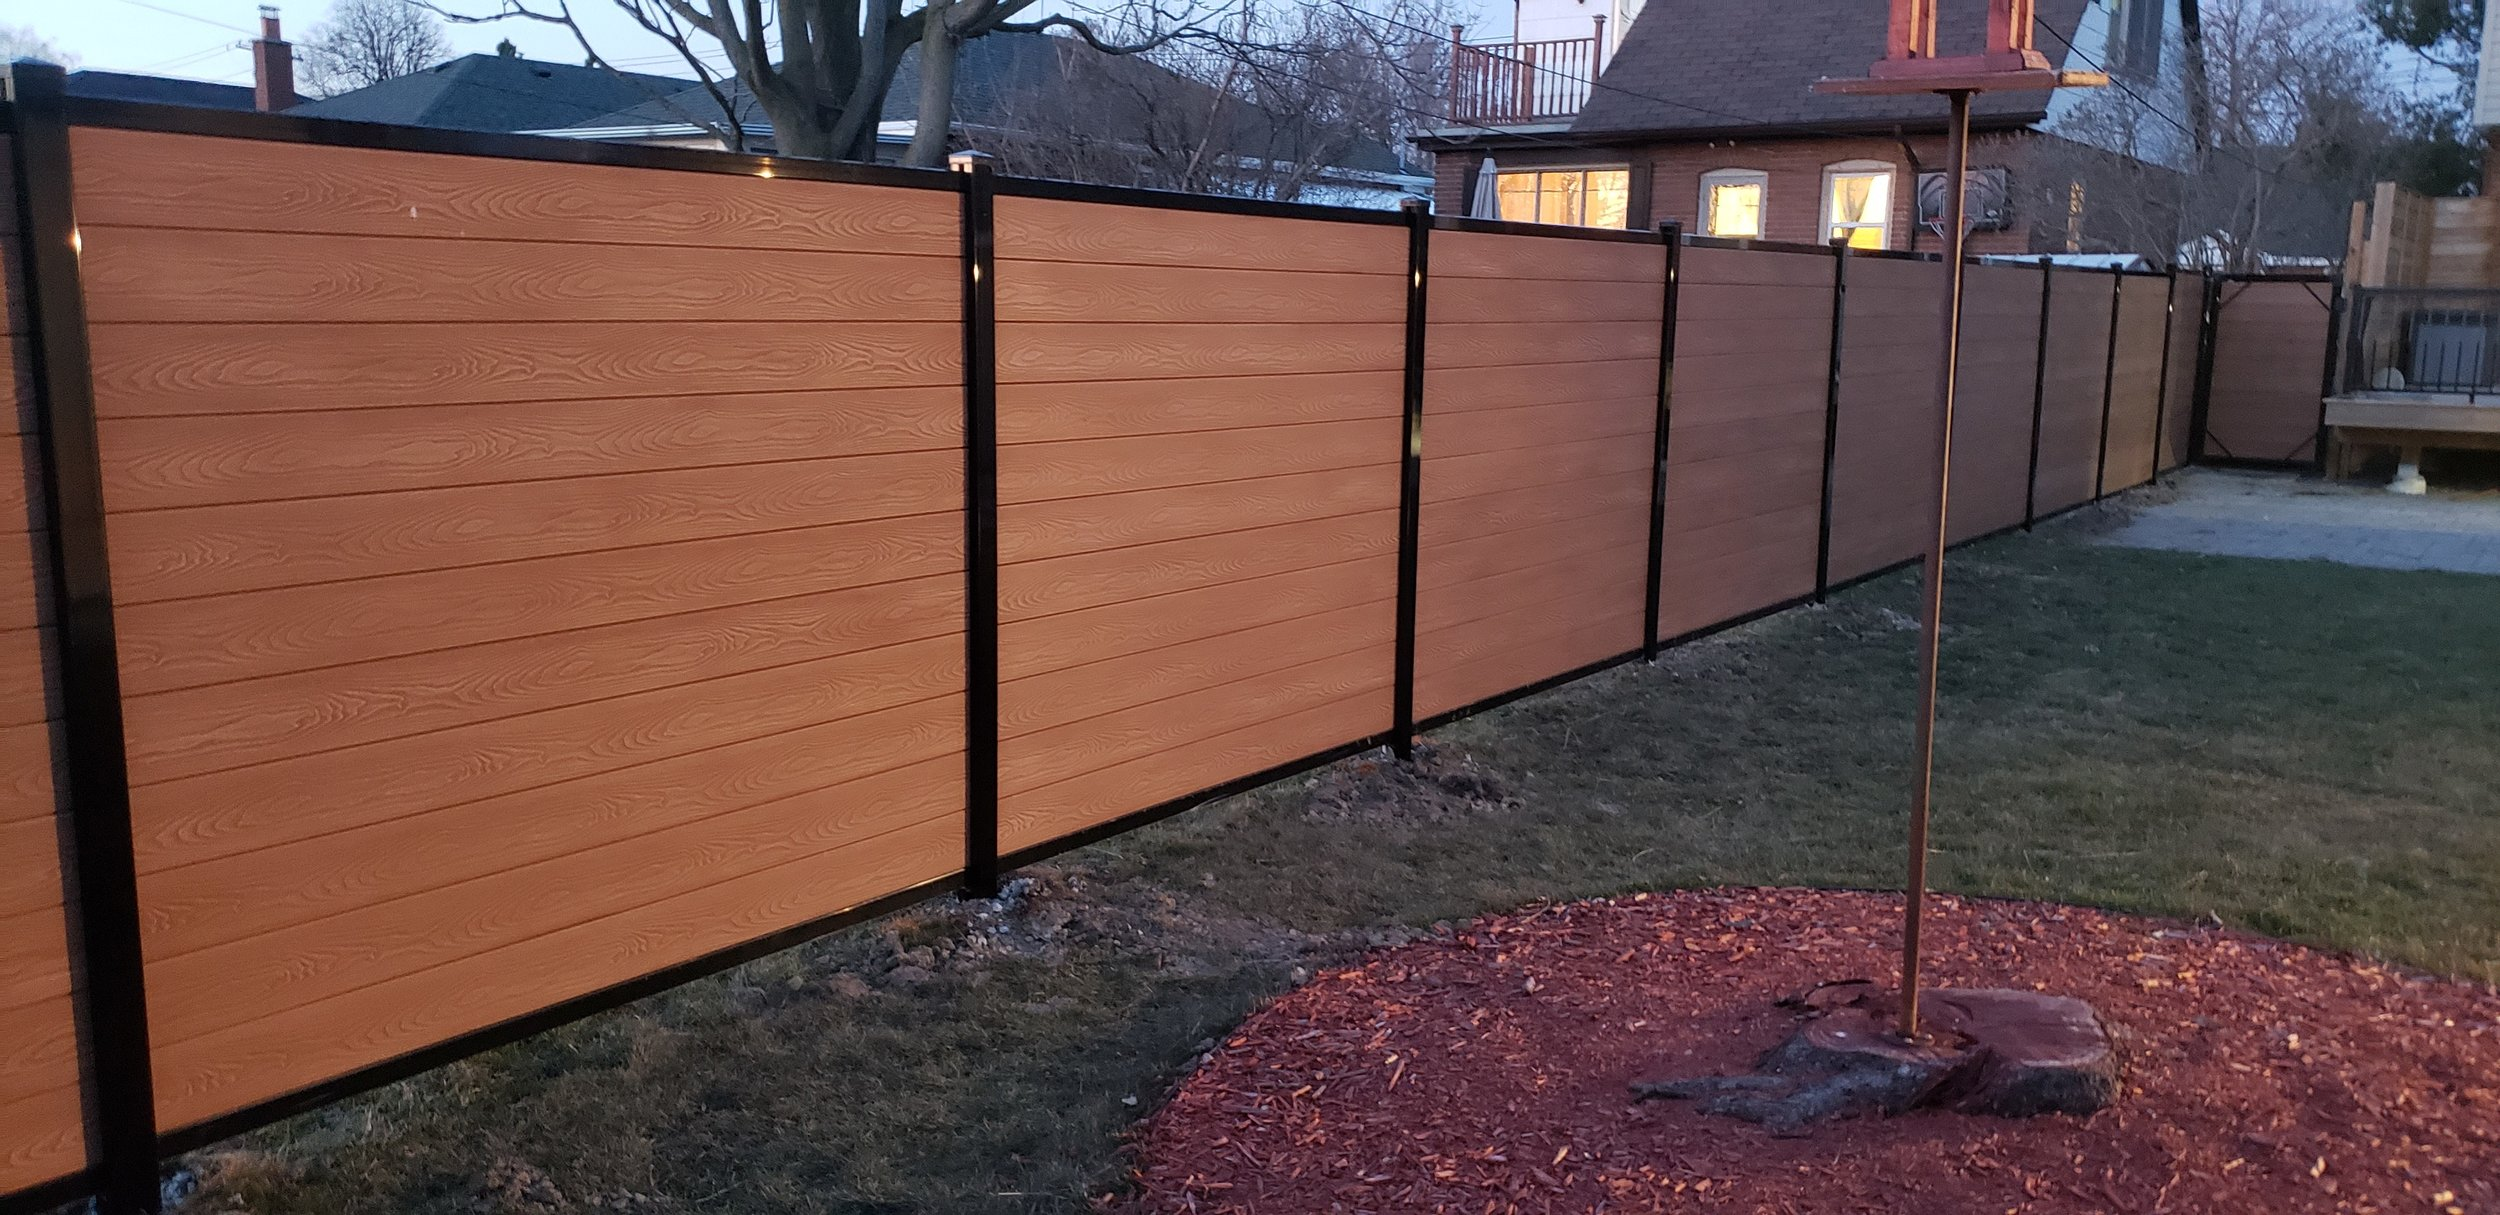 We take the hassle out of fencing using an innovative tongue and groove system that delivers the strength, the durability, and the undeniable good looks of clean, stylish fencing that fits anywhere. We know each customer has their own individual style and we are offering 8 colors for them to choose from. Beautify your property with our stylish and innovative Composite Fence System.